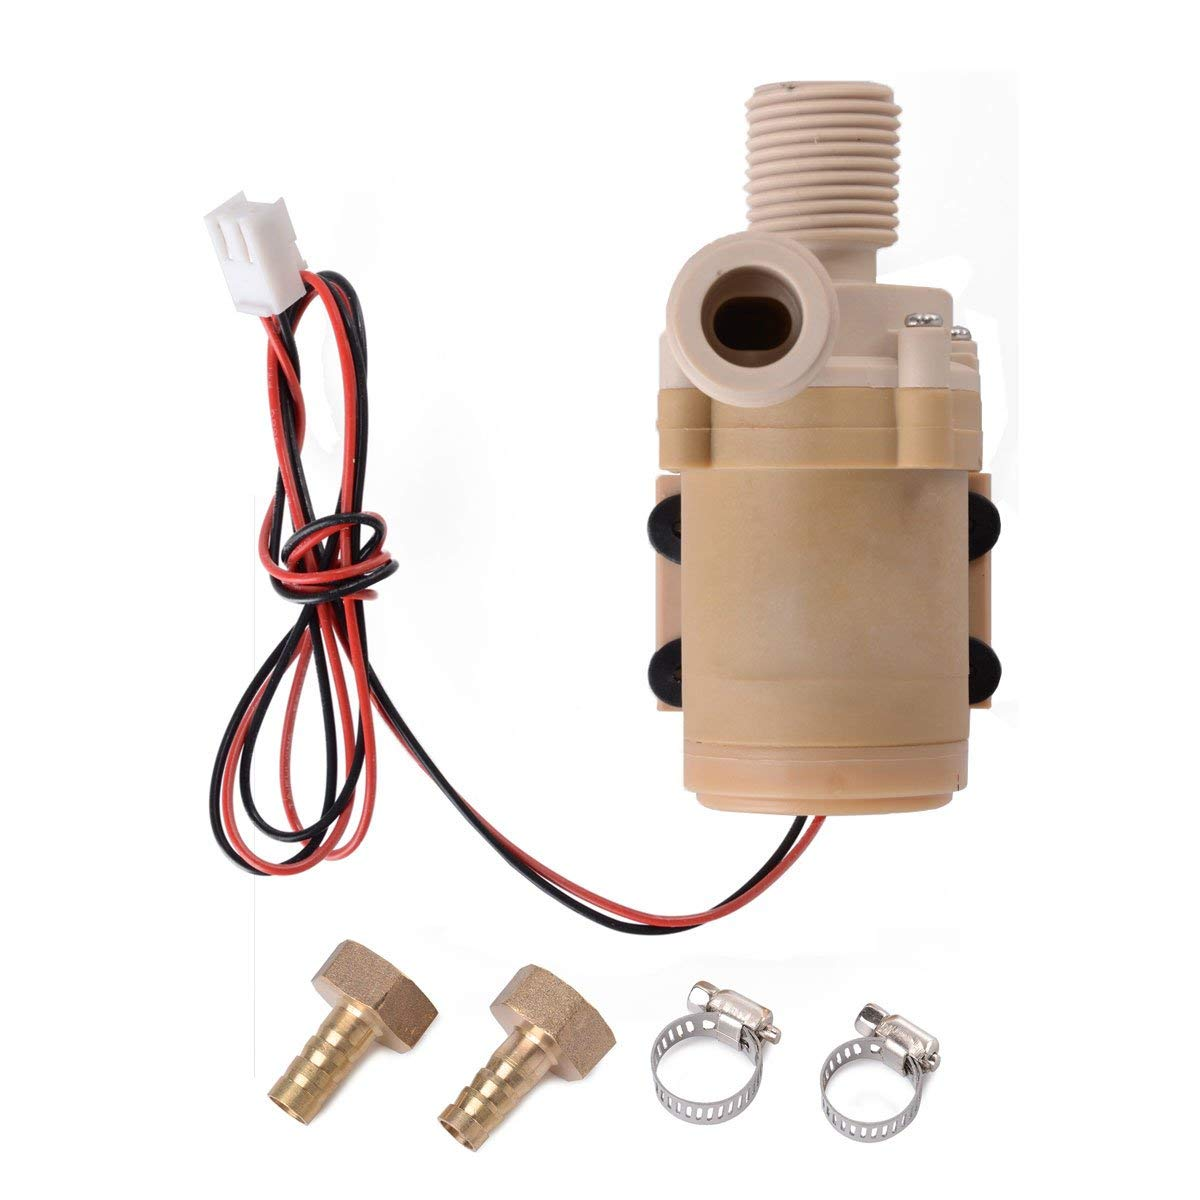 XCSOURCE Solar DC 12V Hot Water Circulation Pump Brushless Motor Water Pump + 2 x Copper fittings(10mm outer diameter) +2 x Stainless steel clamps 3M New TE089